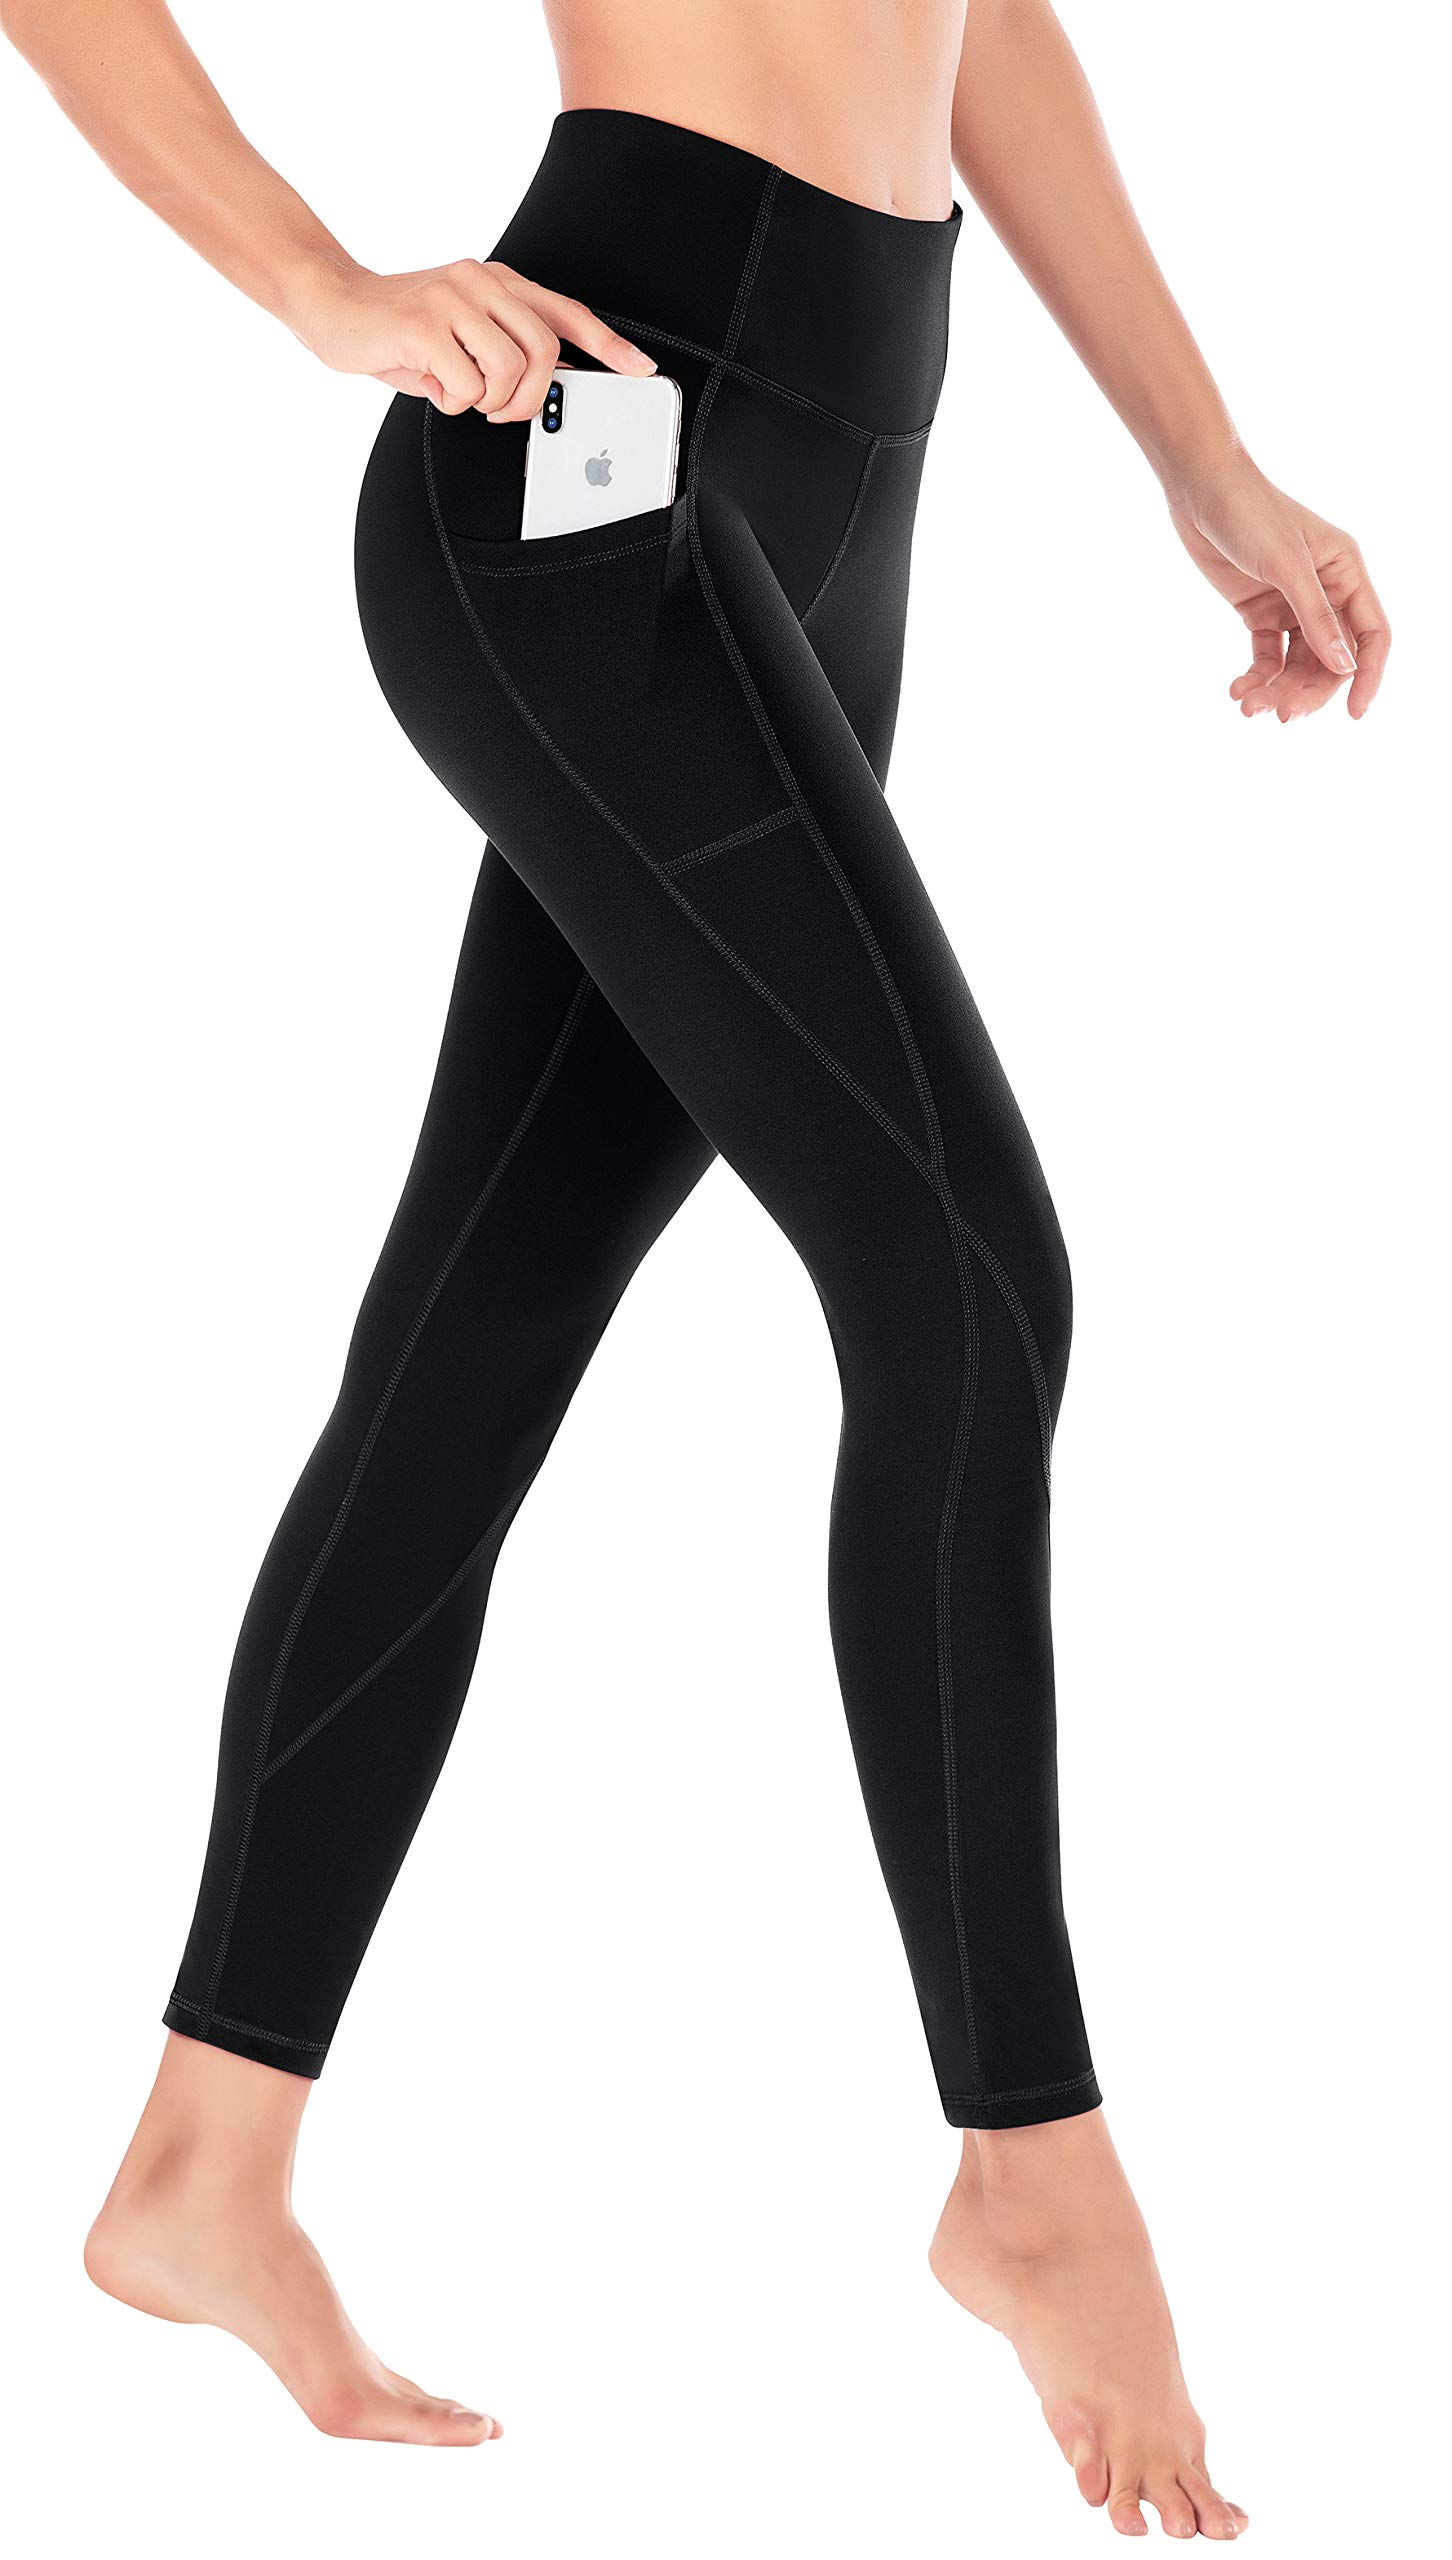 e133f1c33410d Best Rated in Women's Athletic Leggings & Helpful Customer Reviews ...